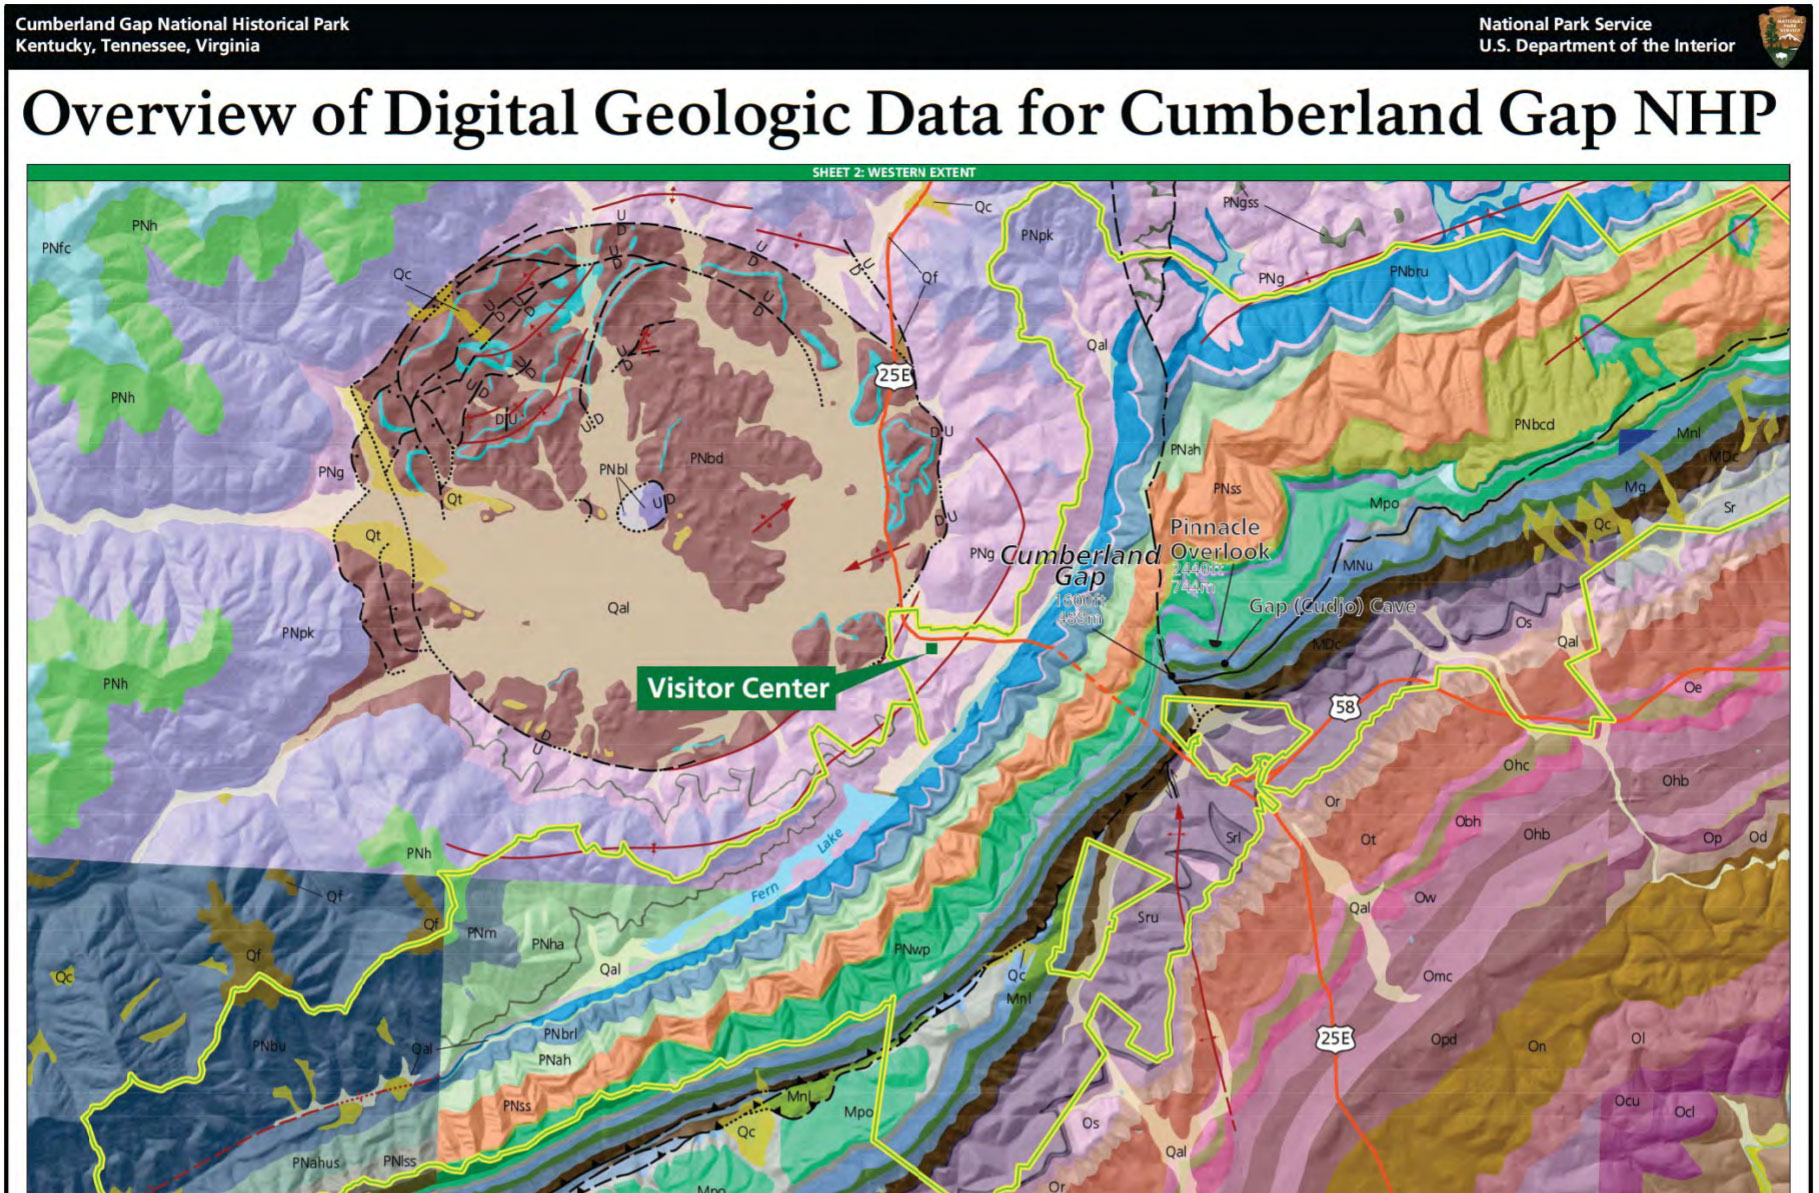 Nps Geodiversity Atlas Cumberland Gap National Historical